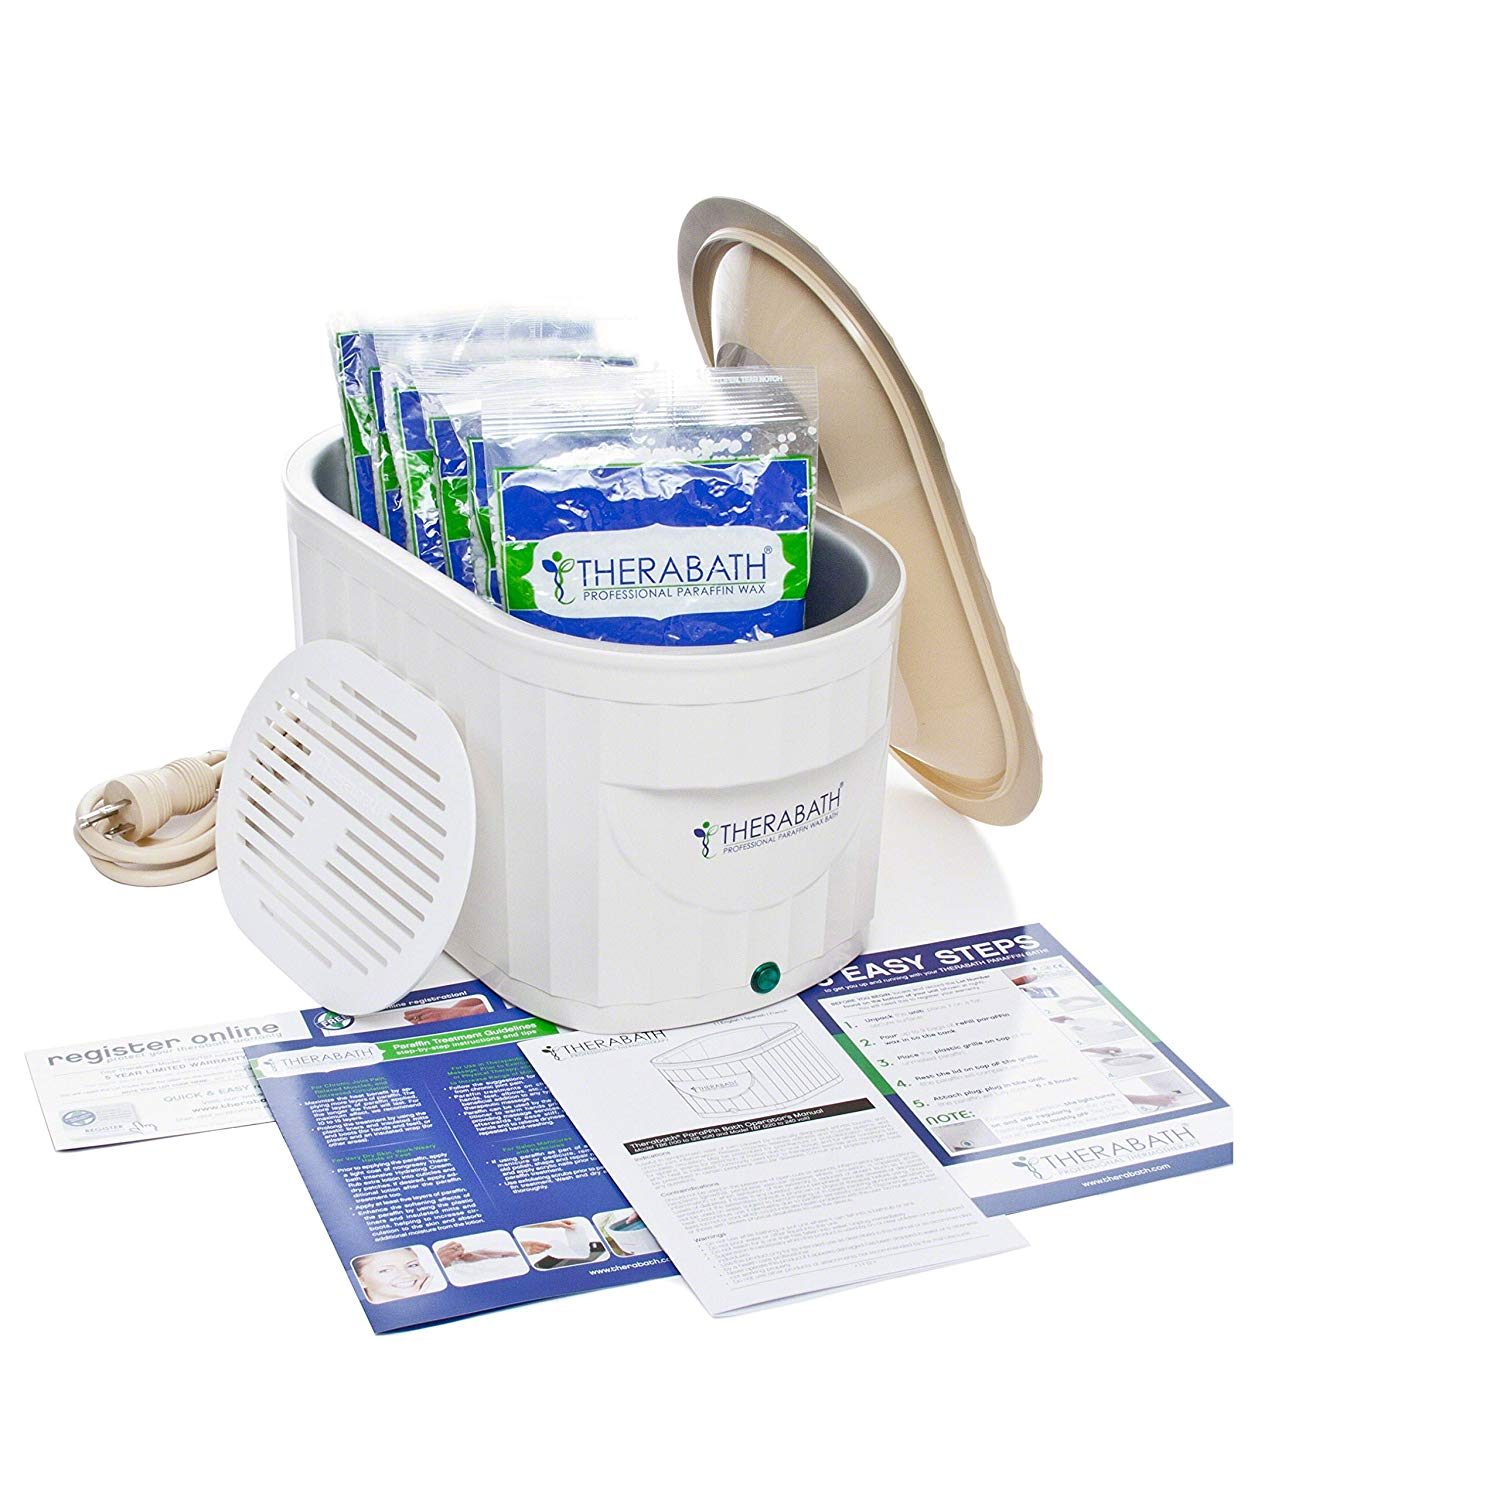 2. Therabath Professional Thermotherapy Paraffin Bath: